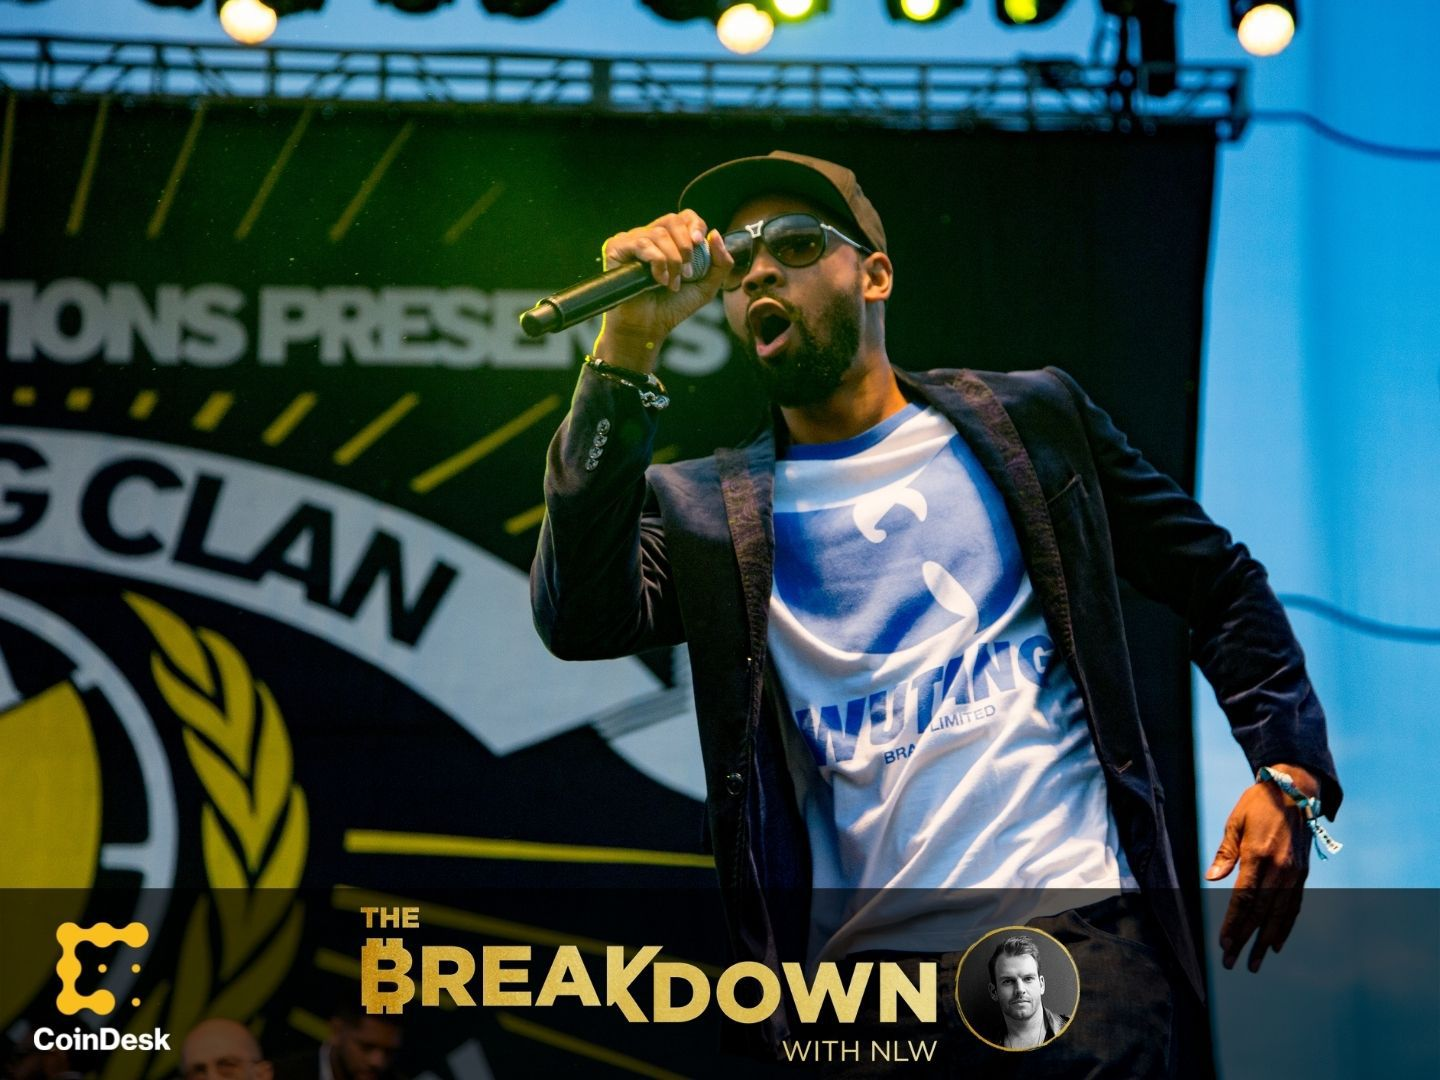 The US Government Sold a Wu-Tang Album to a DAO for $4M